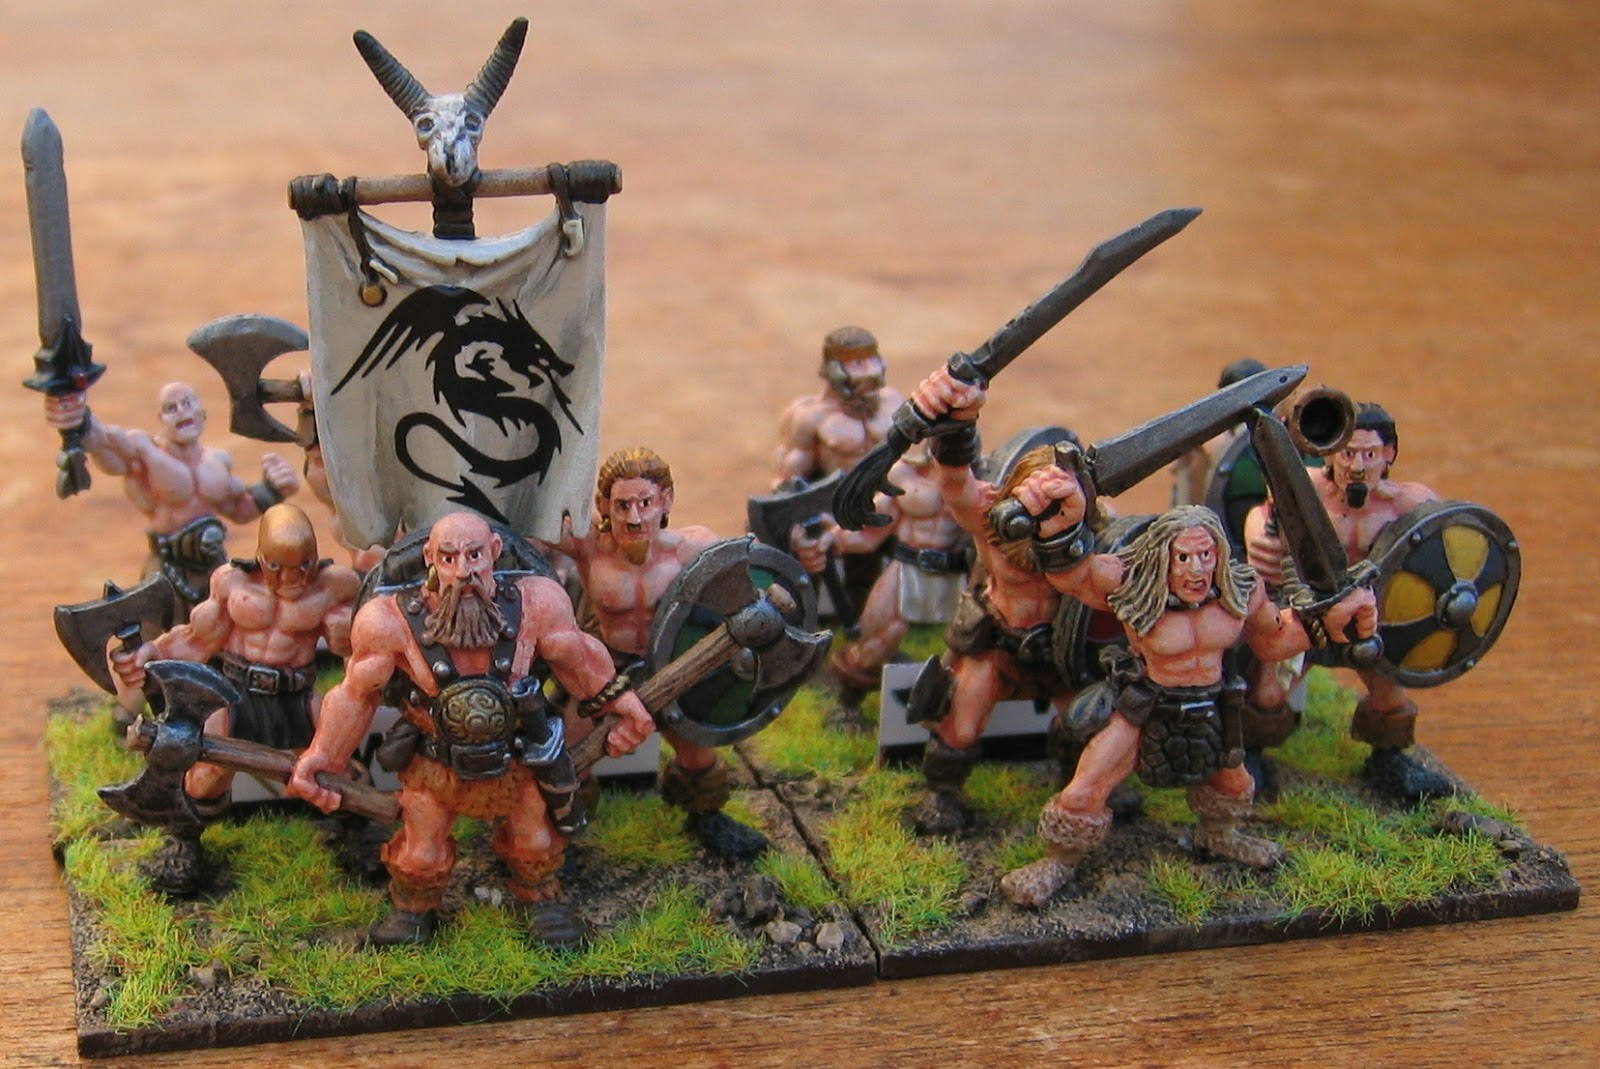 Colgar6 And The Infinite Legion Of Toy Soldiers December Oddments Cerci Speed Circuit Pacer Relic Knights Ebay Finally Here Are Some More Barbarian Warband Elements Figures All 28mm Castings From Black Tree Design Though This Time There